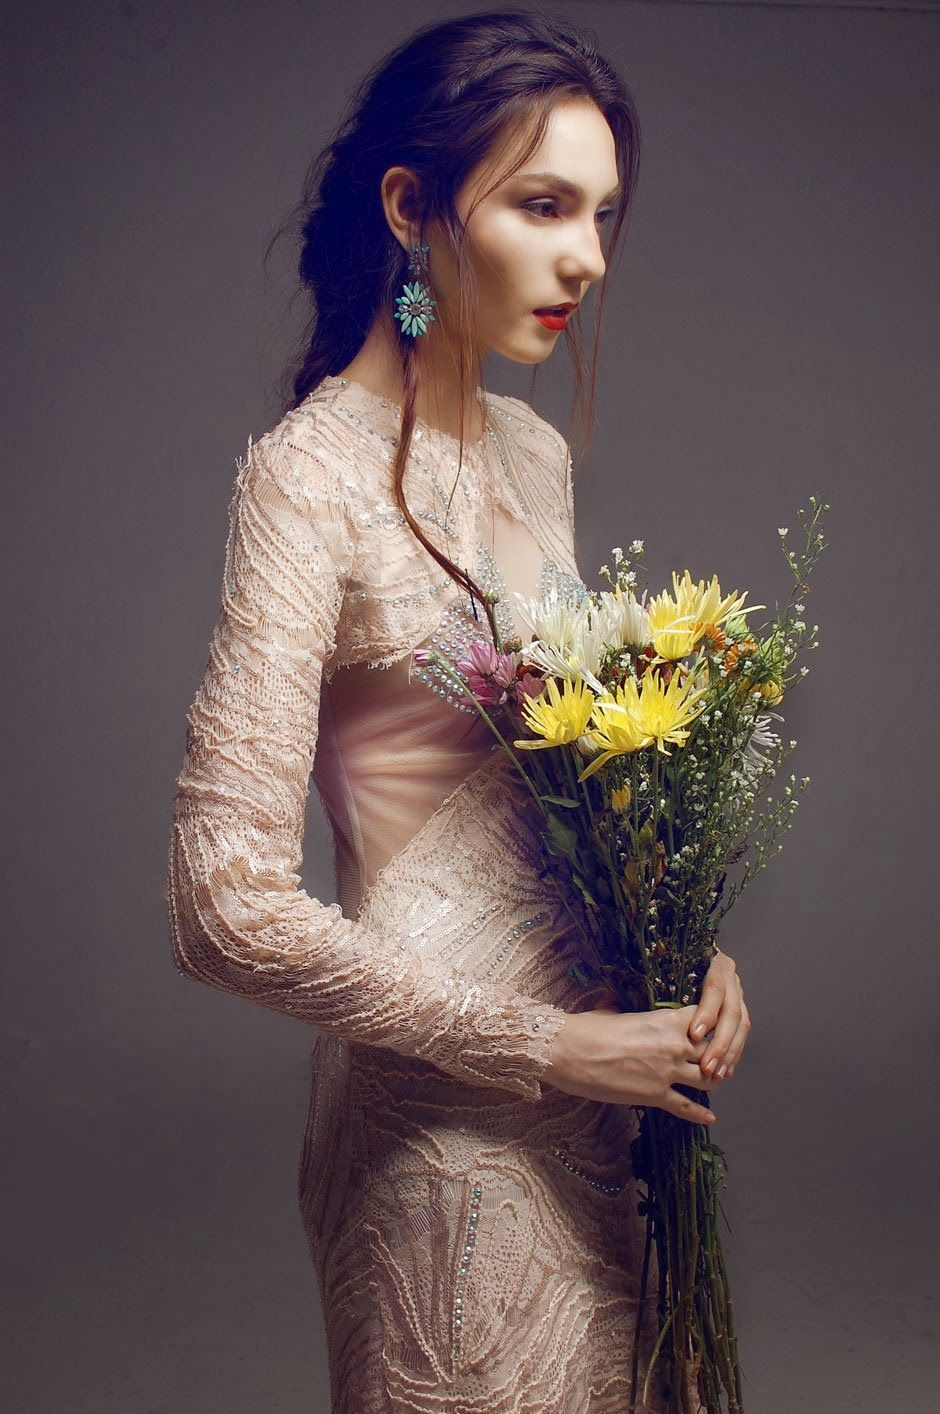 Mis Queridas Fashionistas: Wall Flower by Jerby Tebelin (An imaginary garden)